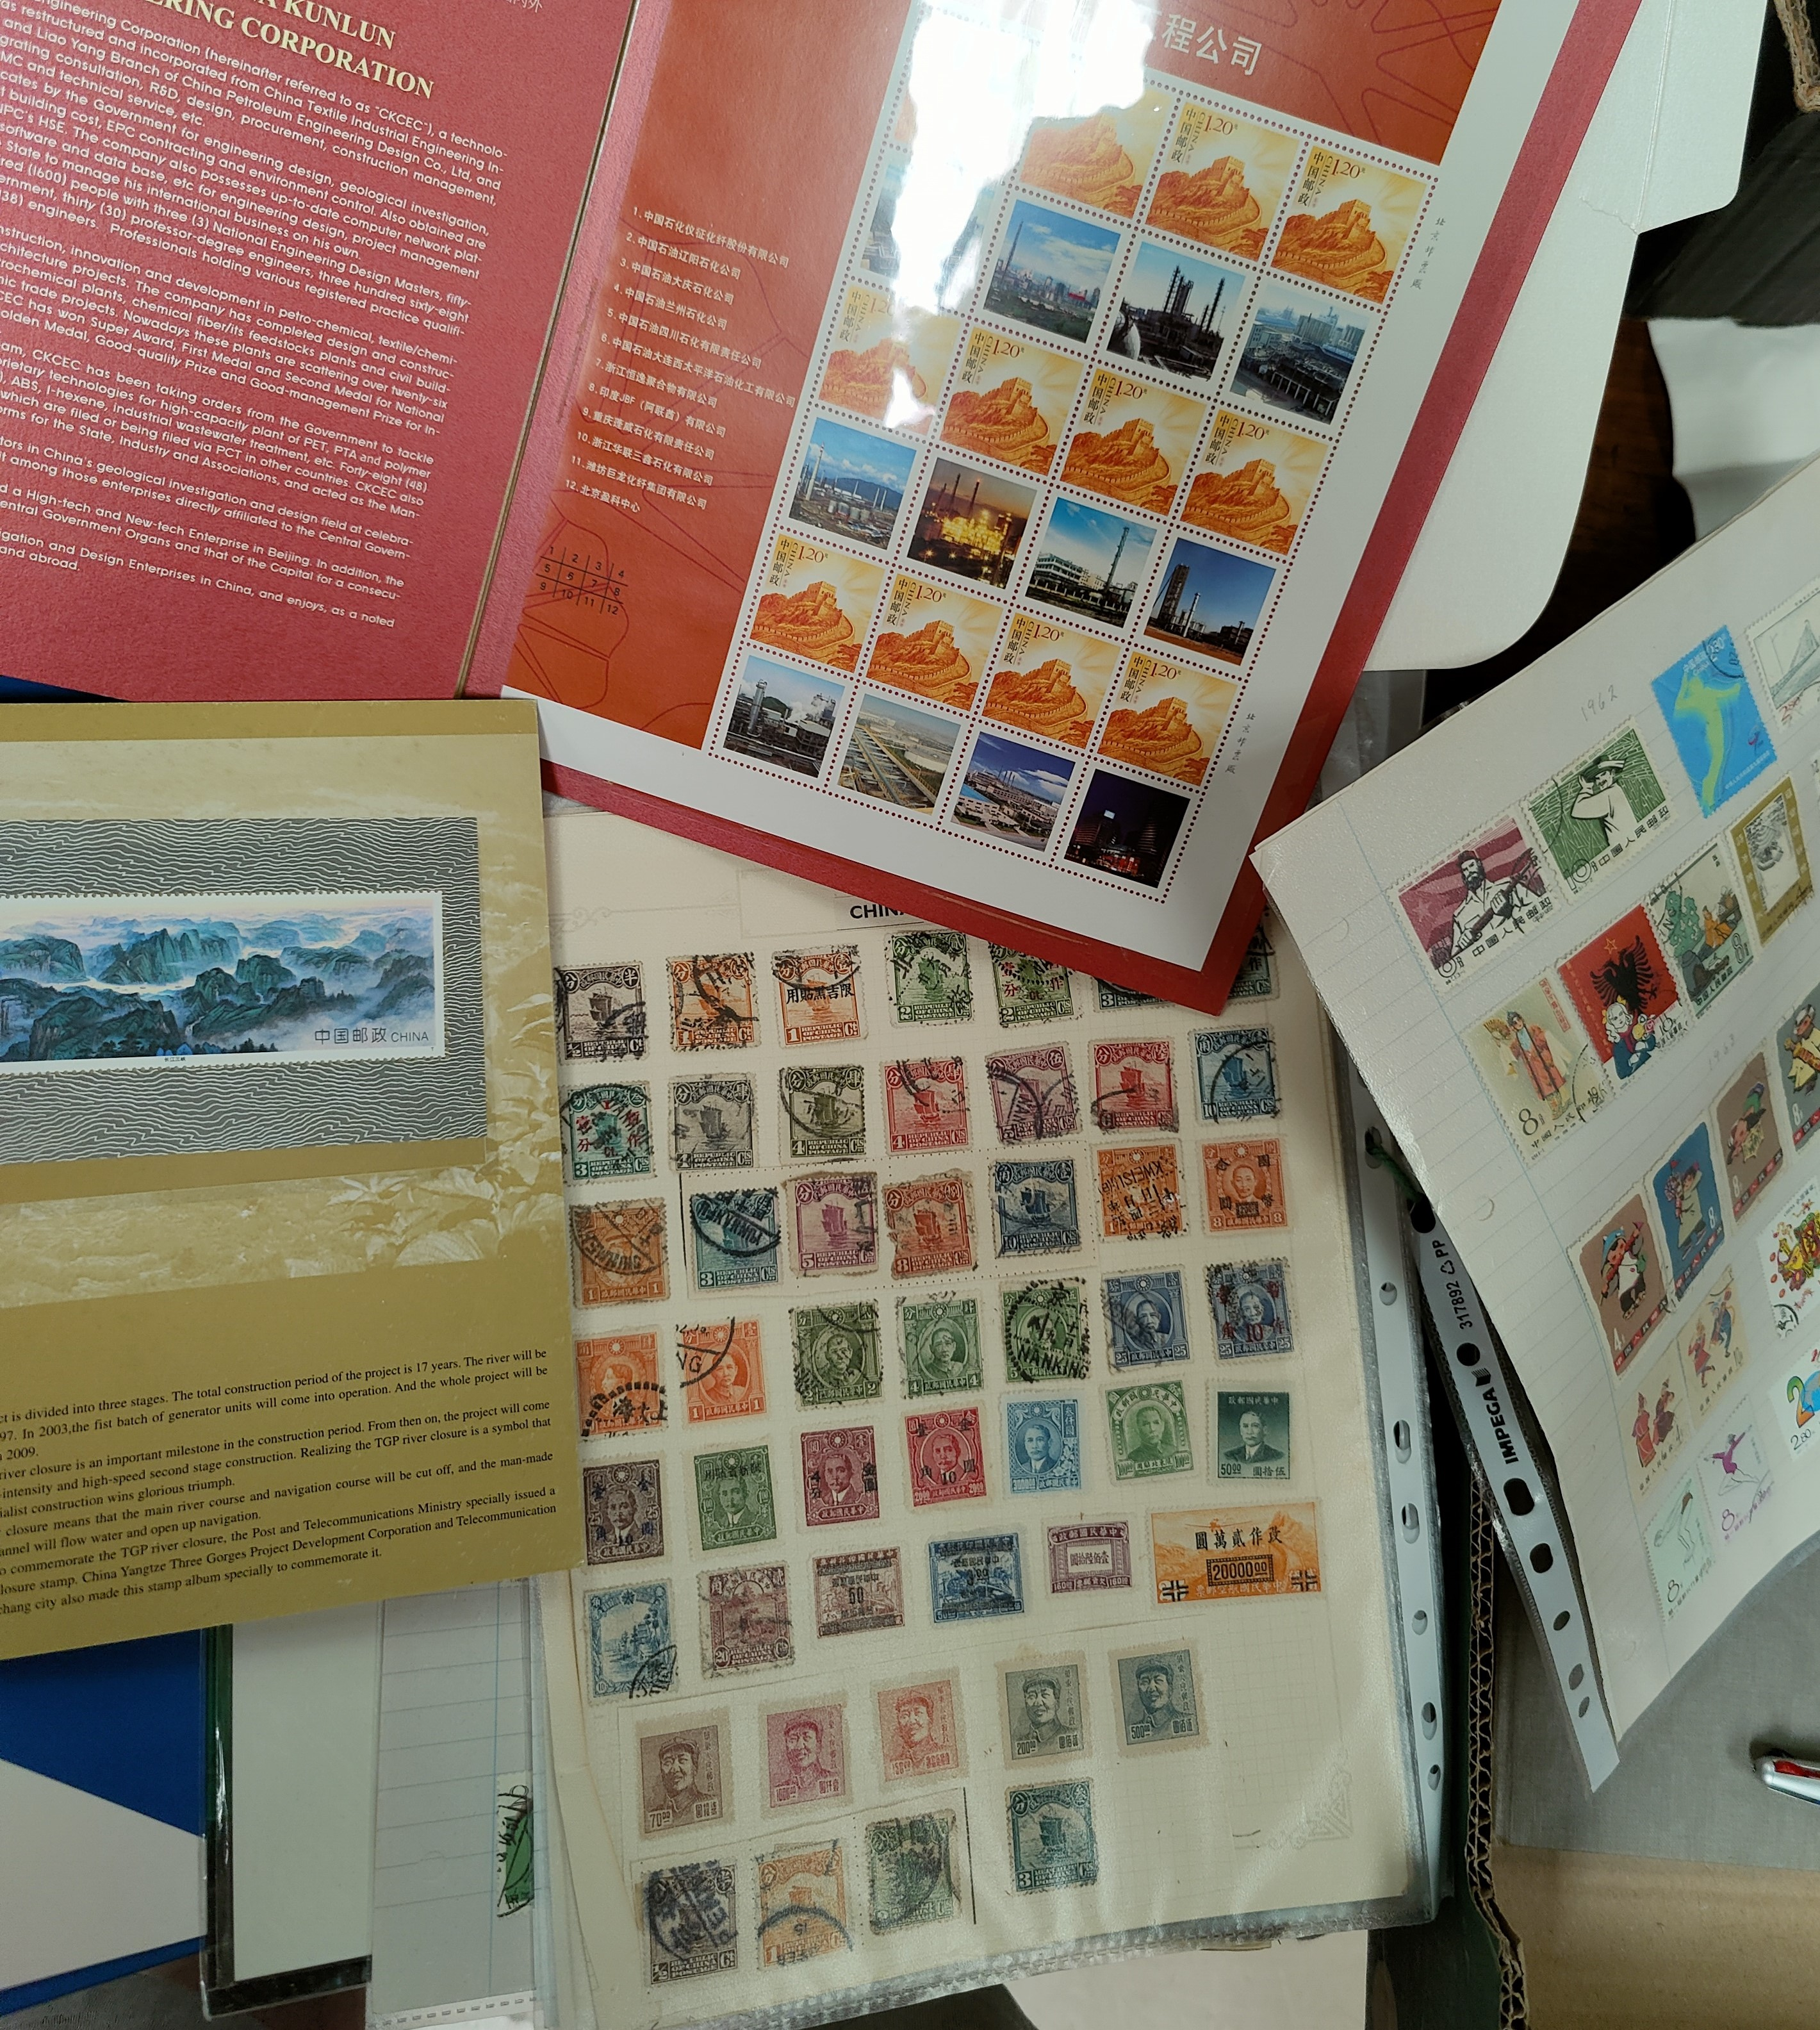 A selection of Chinese stamps